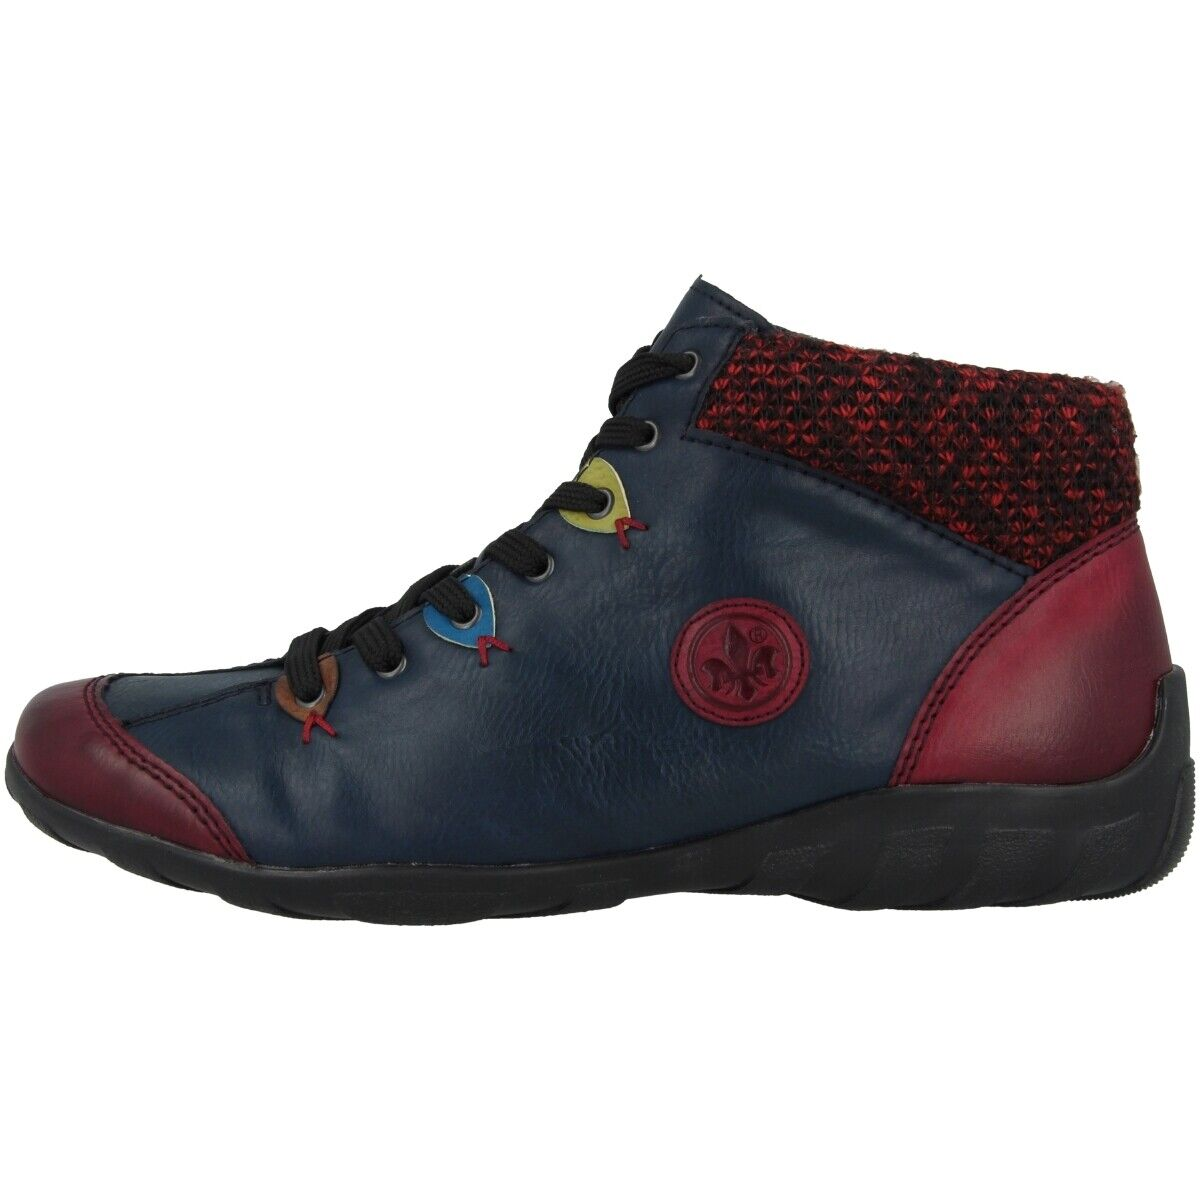 Rieker eagle-leeds shoes antistress slippers high top boots navy wine